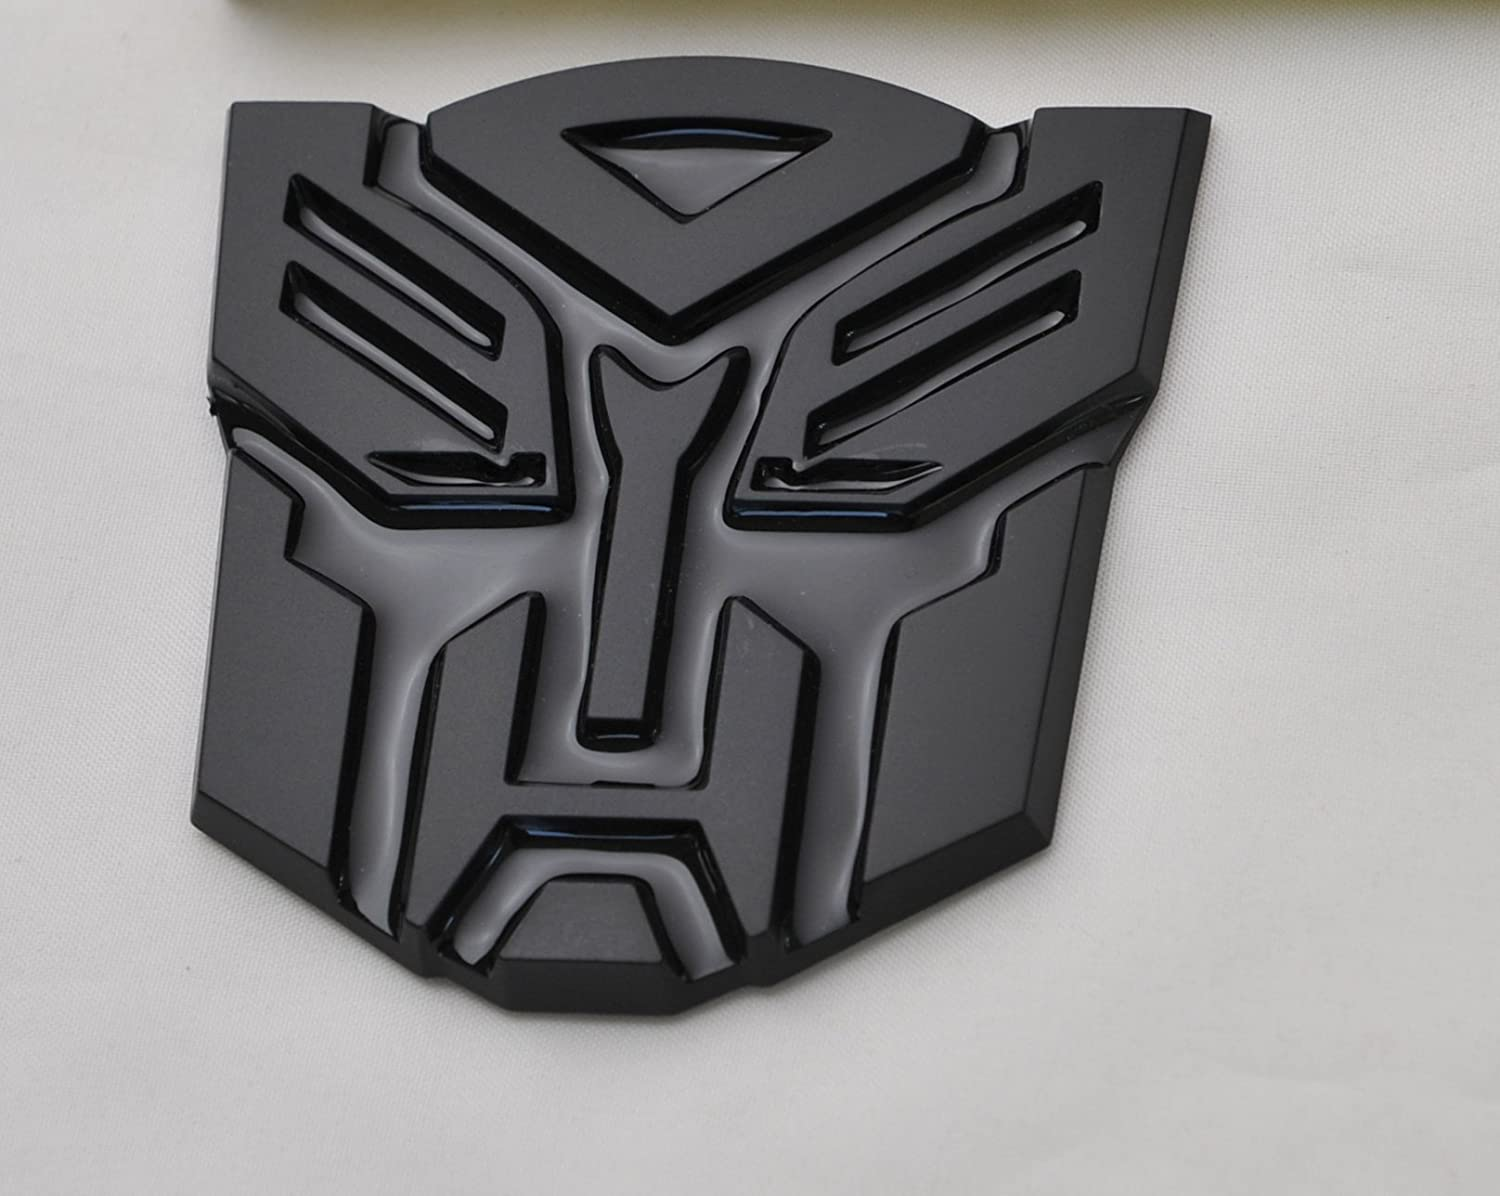 Amazon Transformers Autobot Car Black Badge Emblem 3d Logo